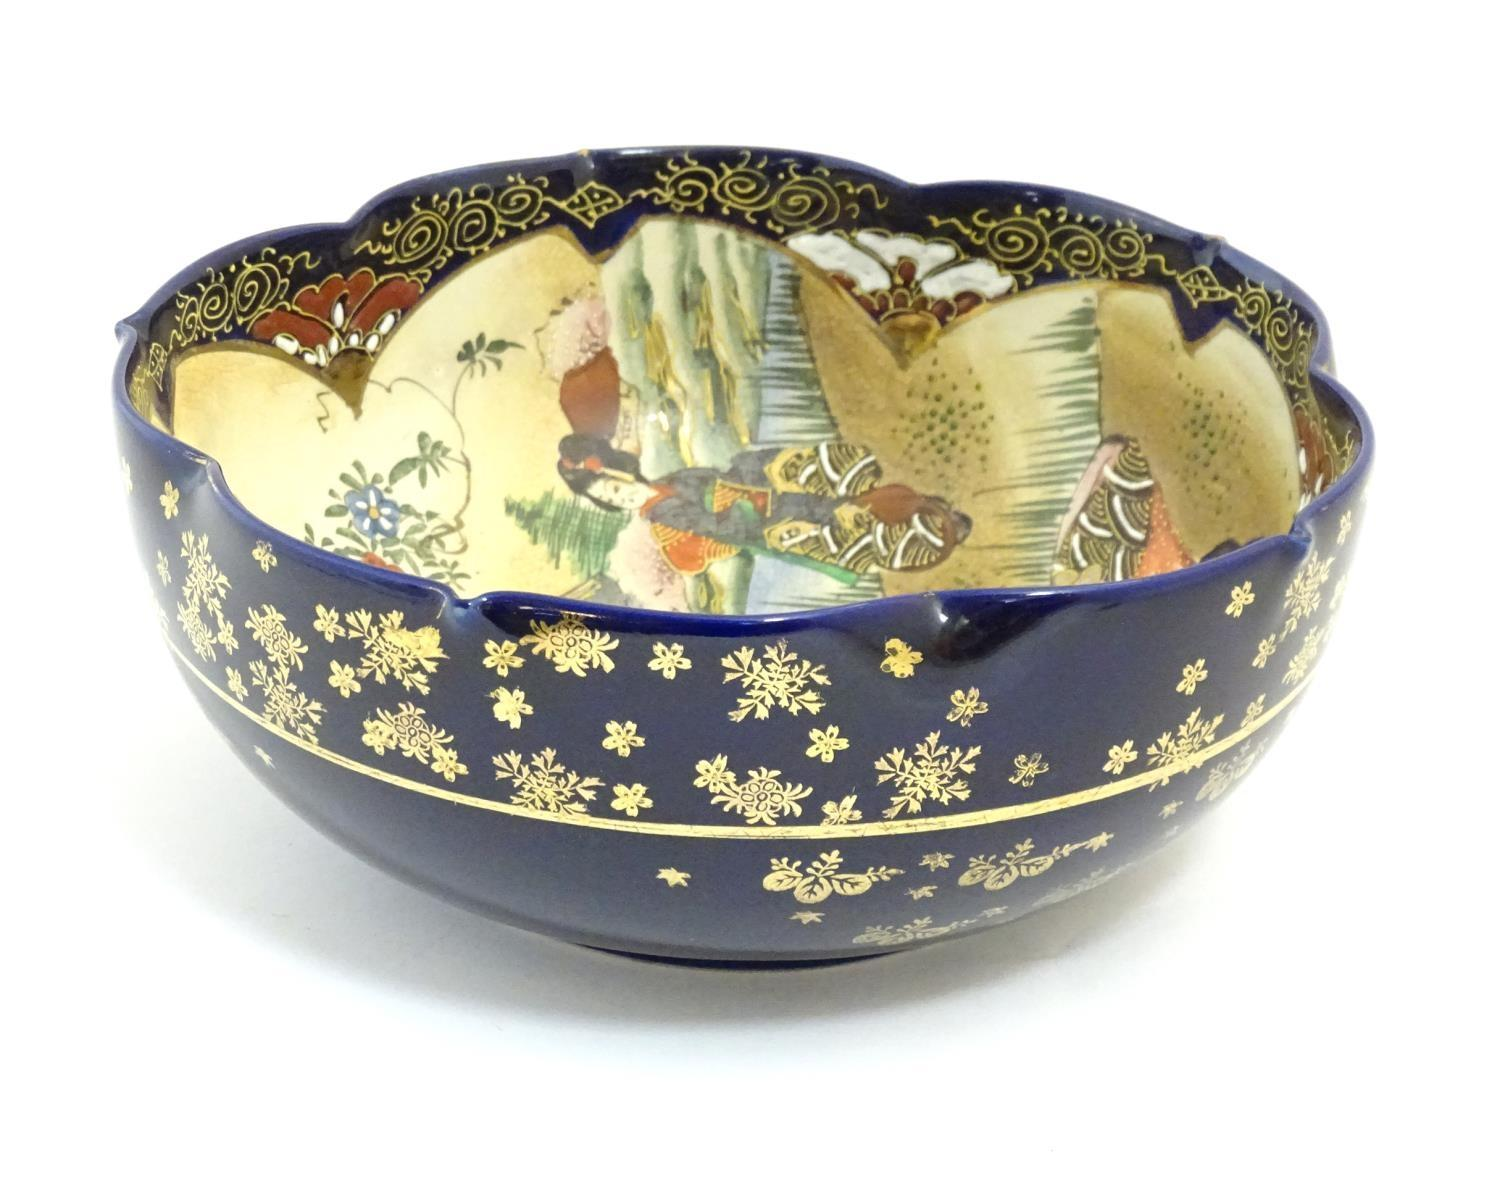 A Japanese export bowl with a lobed rim, decorated with Geisha girls with fans and flowers in a